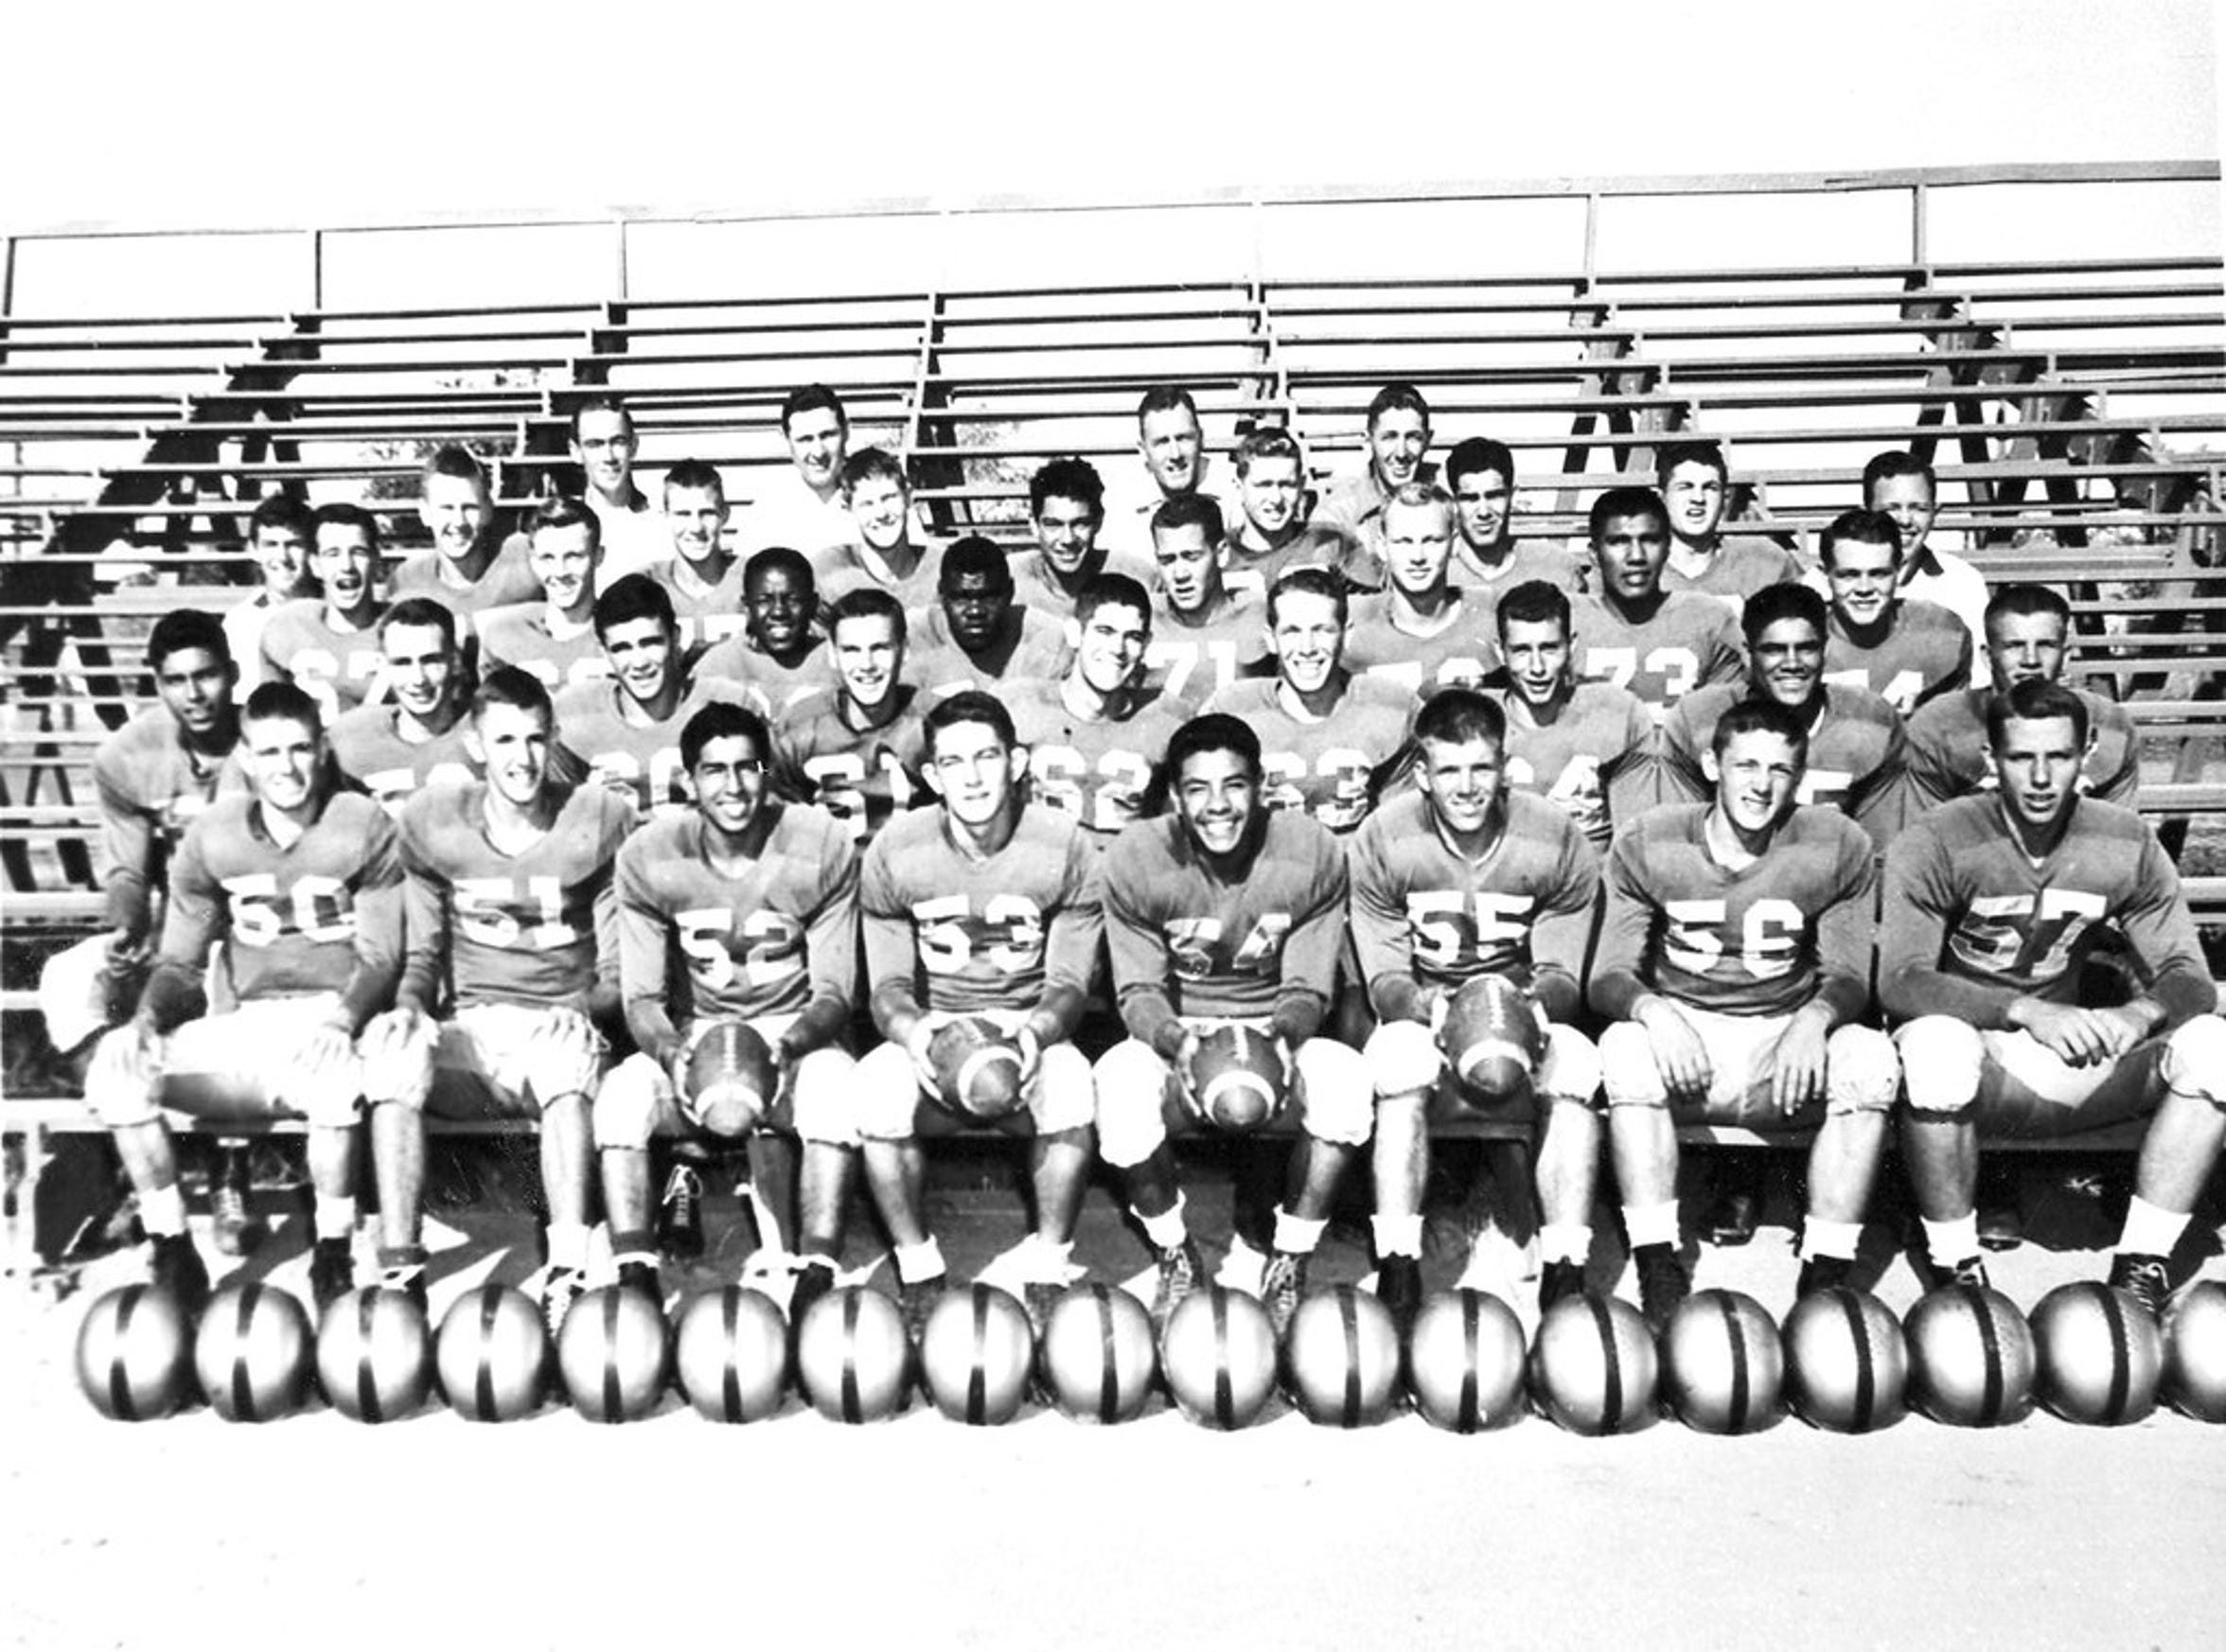 Circa 1953, the Cavemen Football team posed in the bleachers. Pictured in back are Coach Smith, Coach Reid McCloskey, Head Coach Ralph Bowyer.